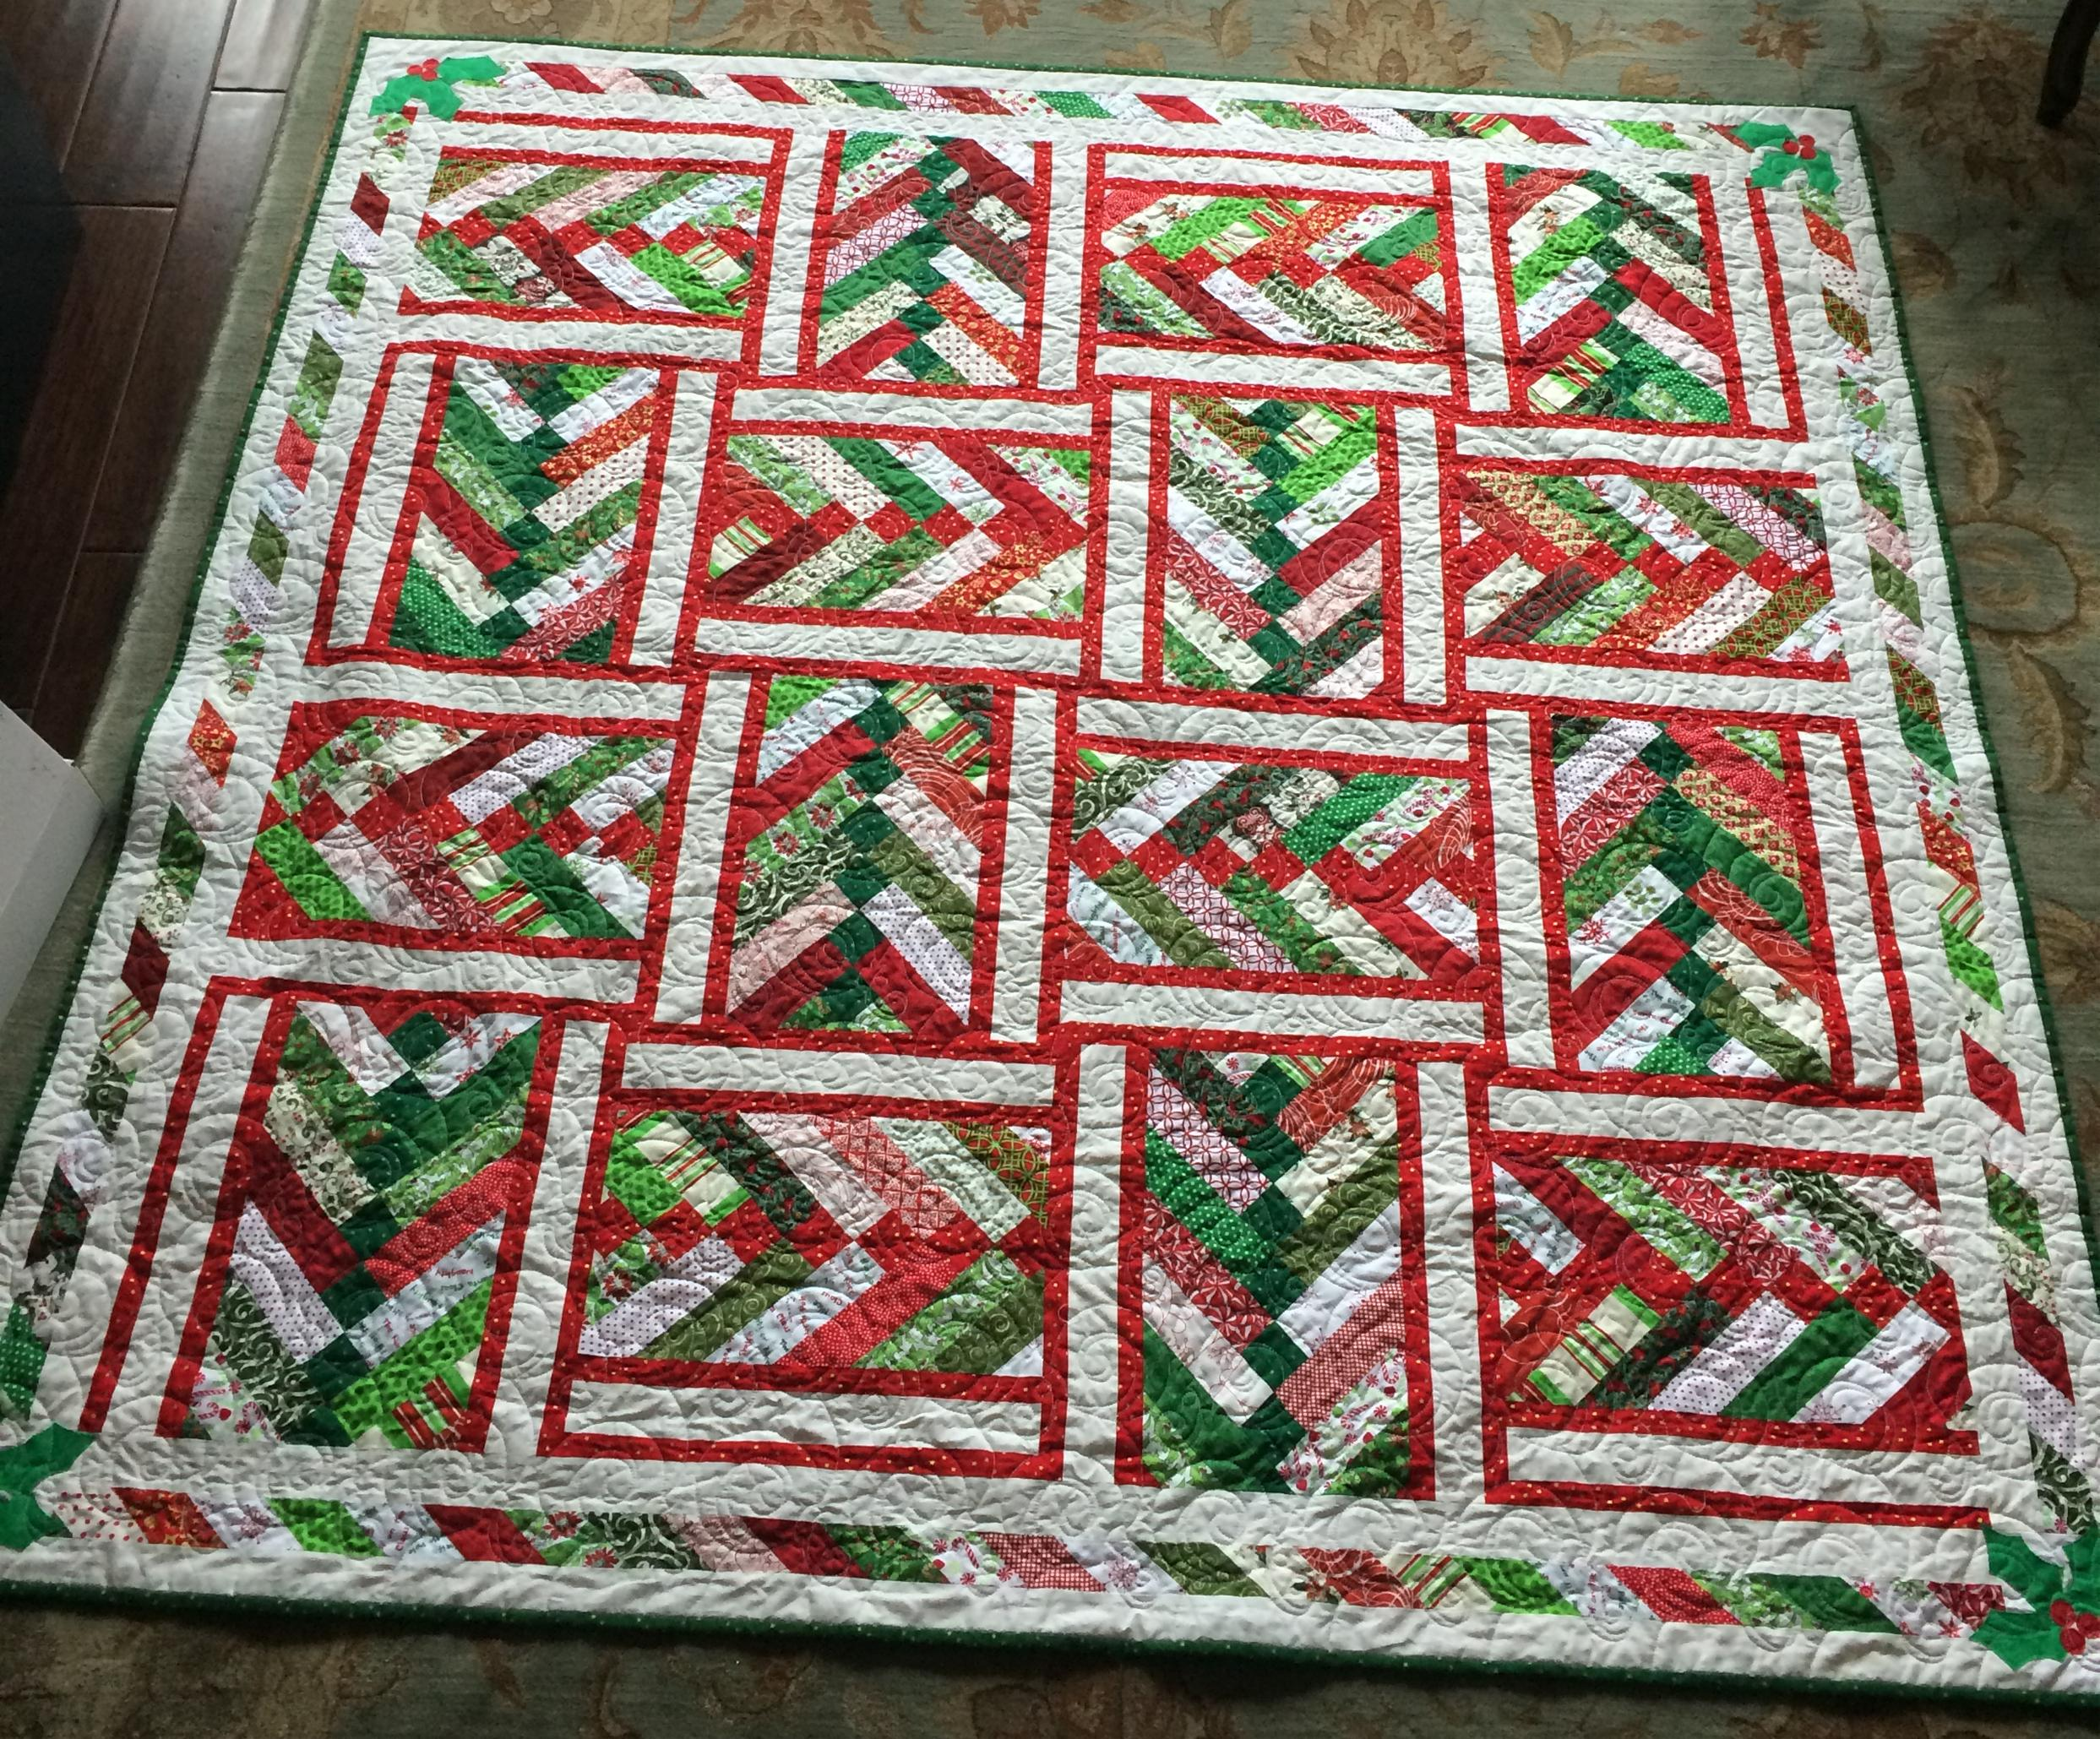 christmas called made tree the judy more country niemeyer pi look this amazing paper by piecing ackerman quilts sampler designed quilt celebration and includes skirt at sandy